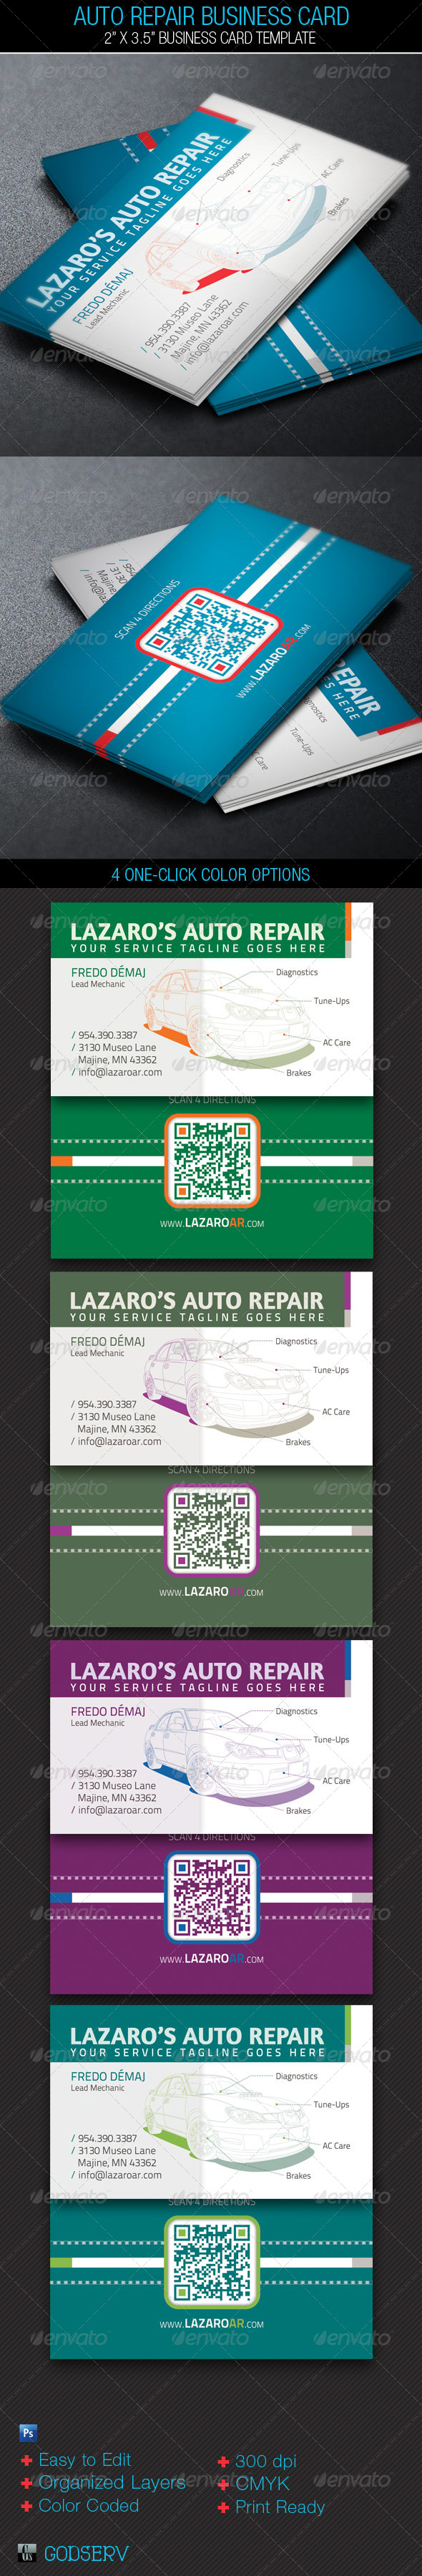 auto repair service business card template industry specific business cards - Auto Repair Business Cards